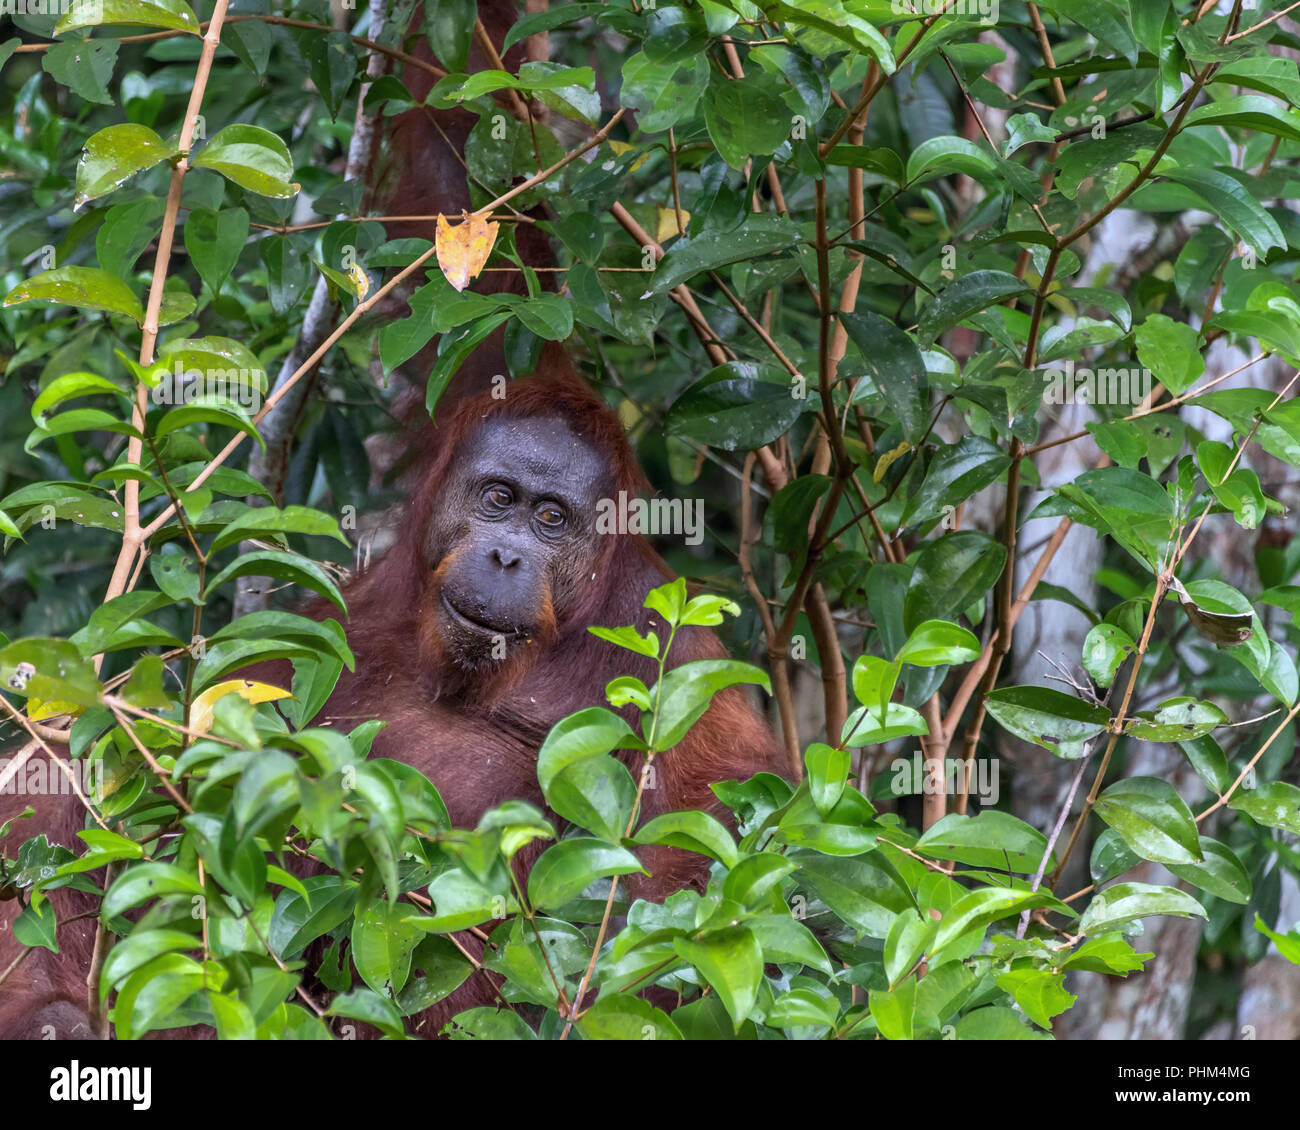 Wild orangutan peeking out of the forest, Tanjung Puting National Park, Kalimantan - Stock Image